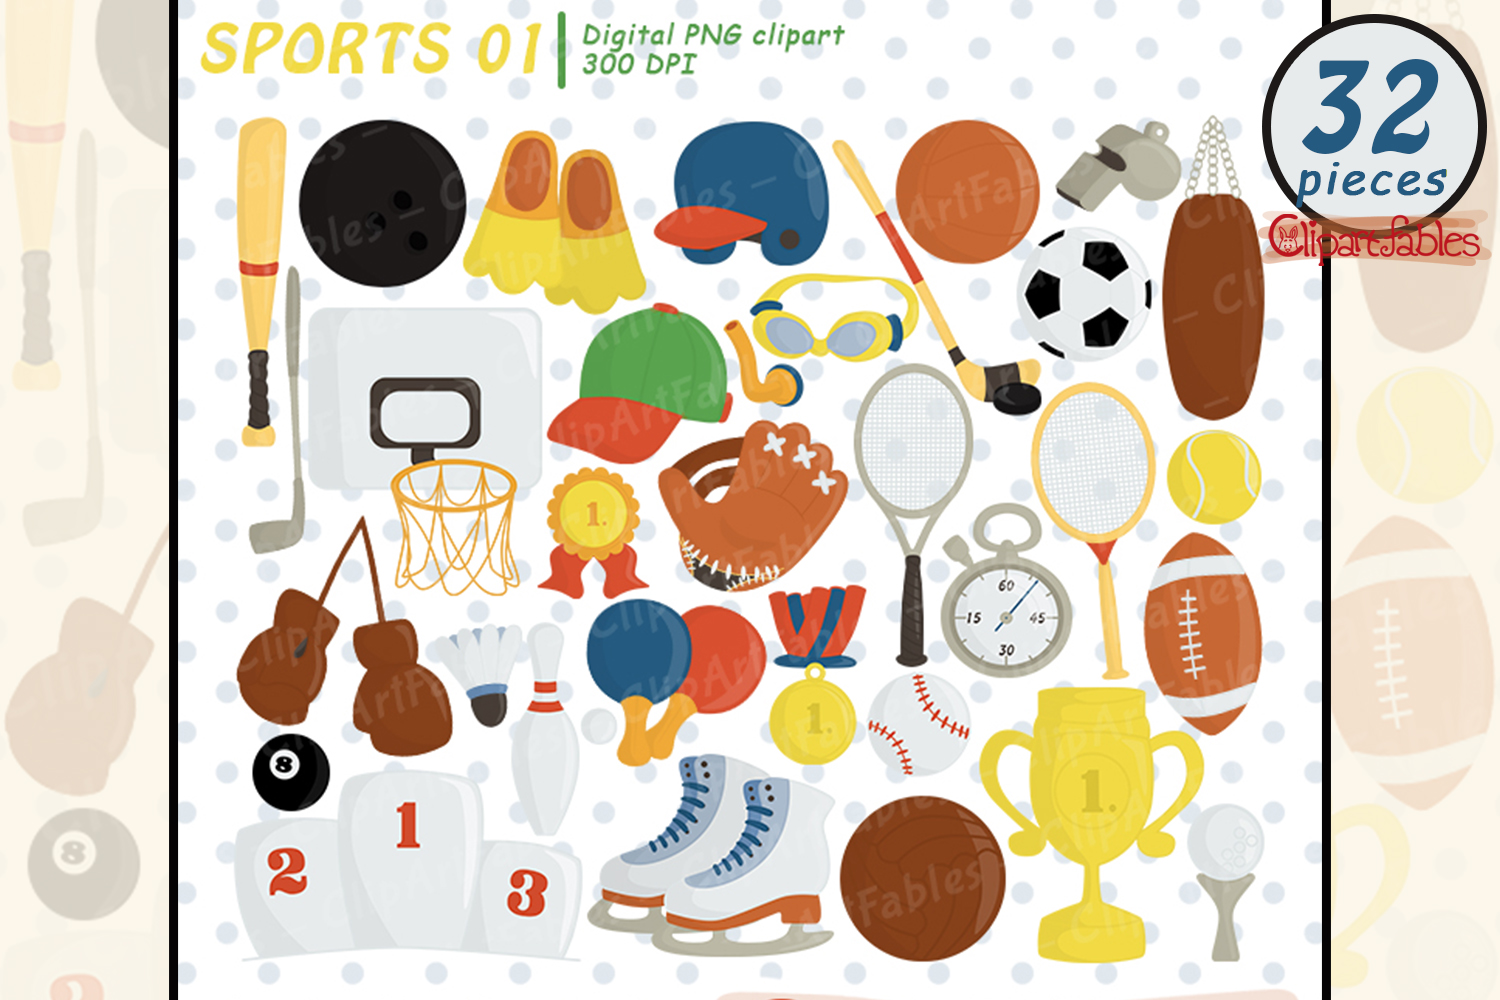 Sport clipart, Ball clip art, Sport birthday decor example image 1